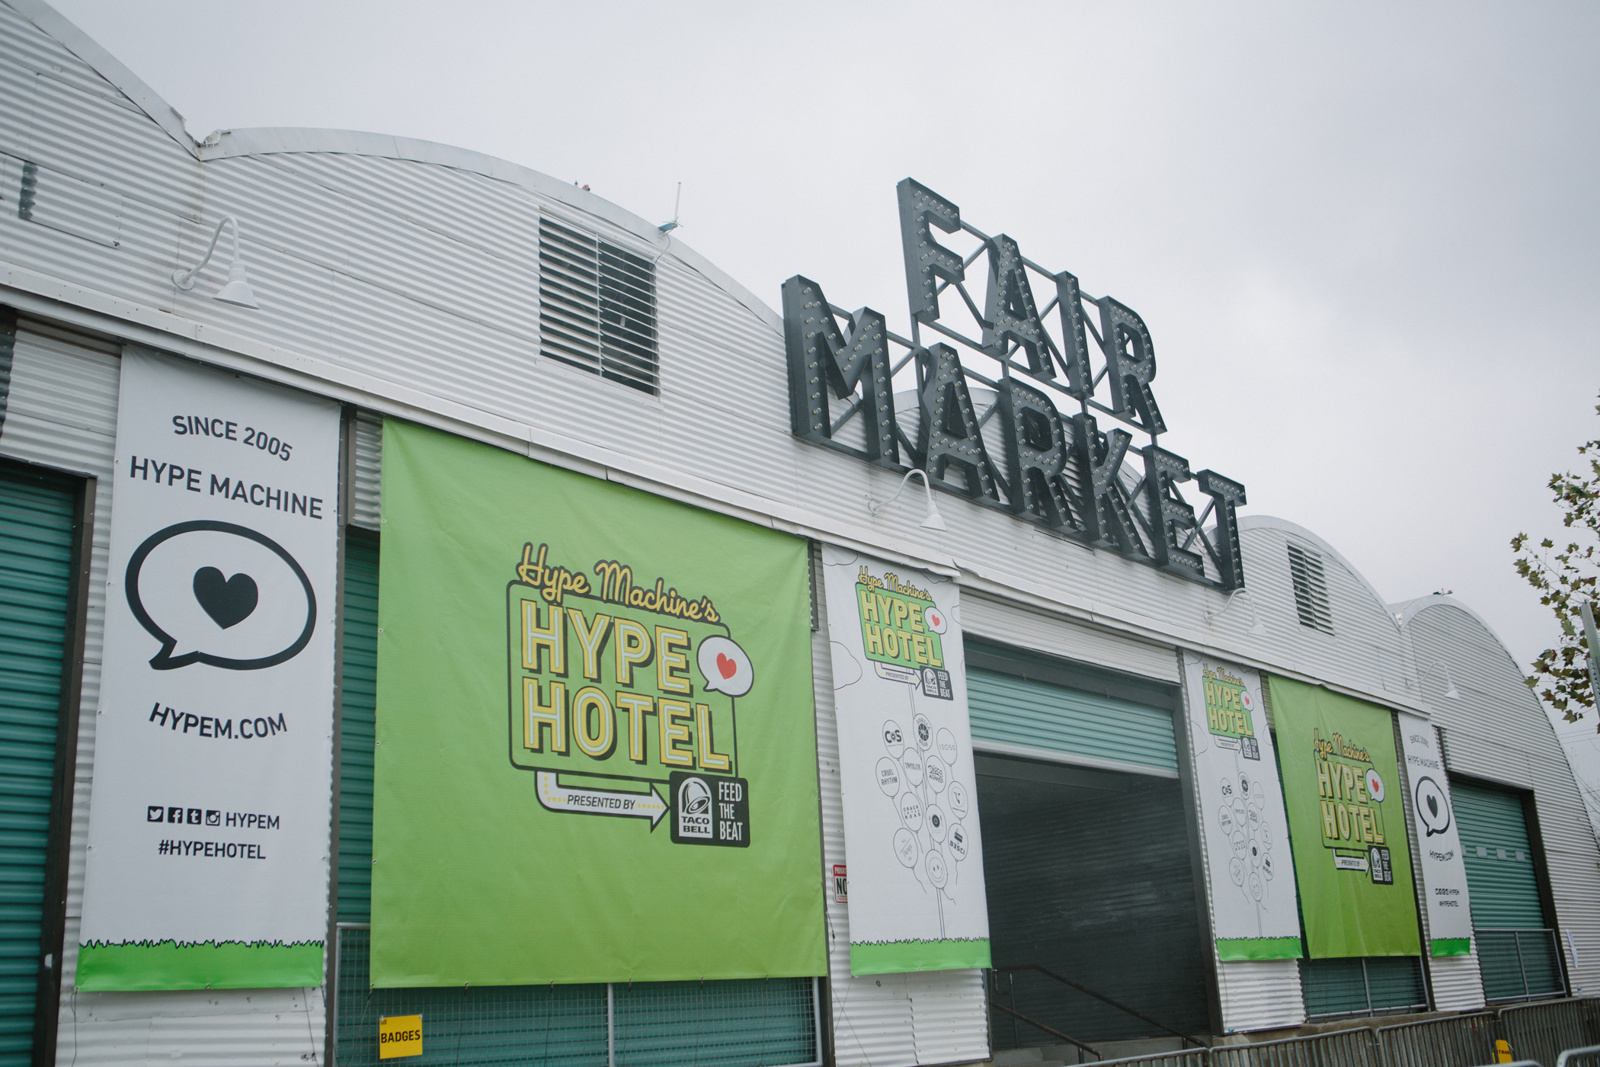 Hype Machine's Hype Hotel